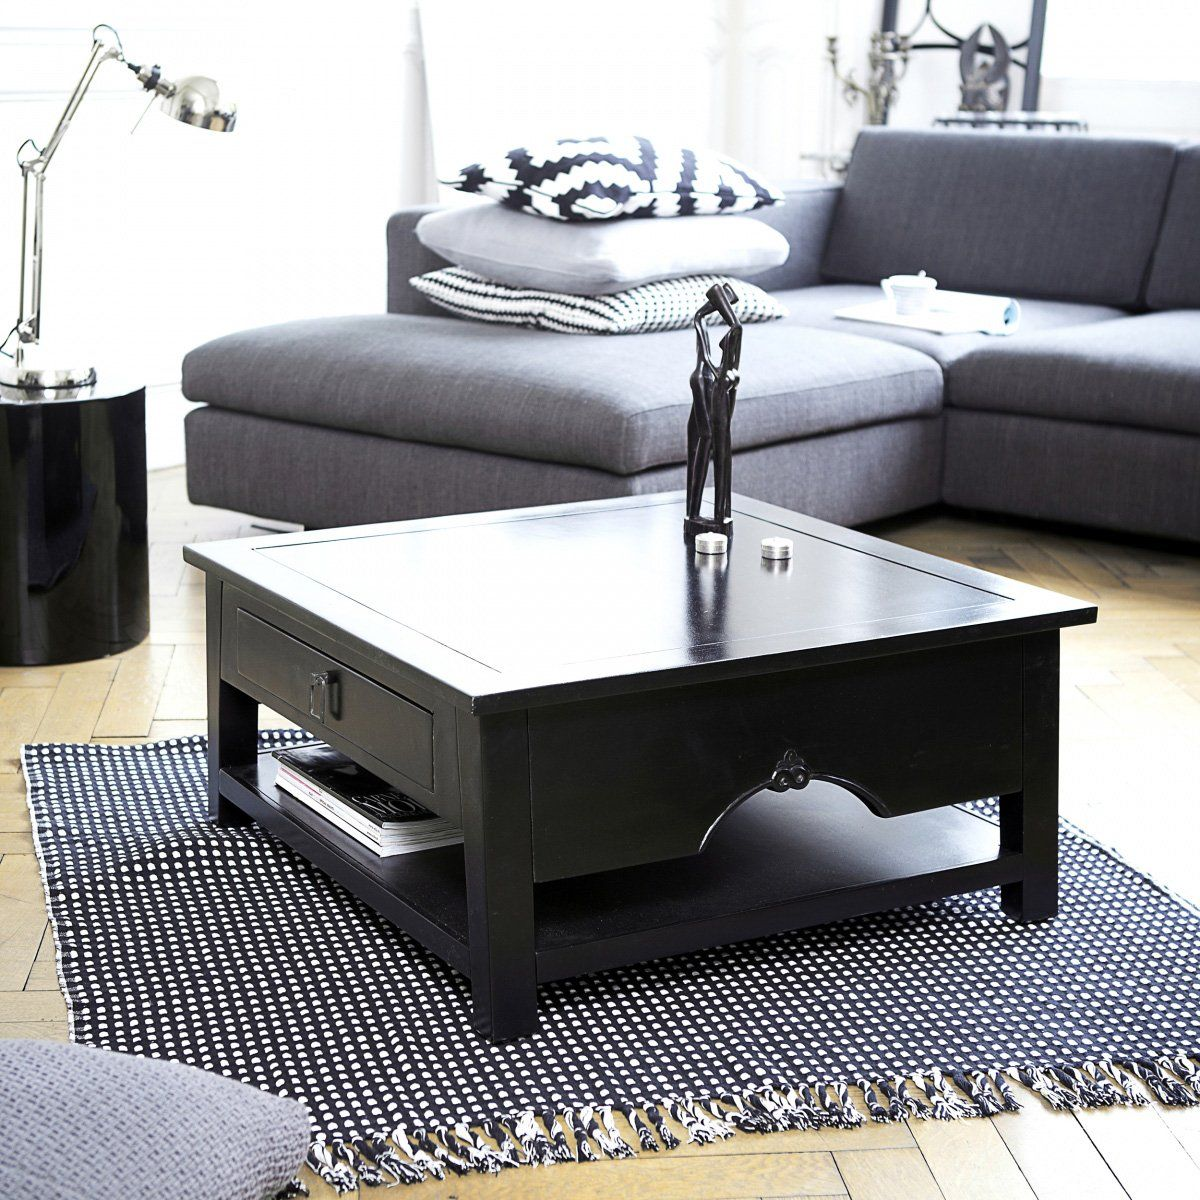 Table Basse En Acajou Noir 75x75 Thaki Black Table Basse Meubles En Acajou Table Basse Teck